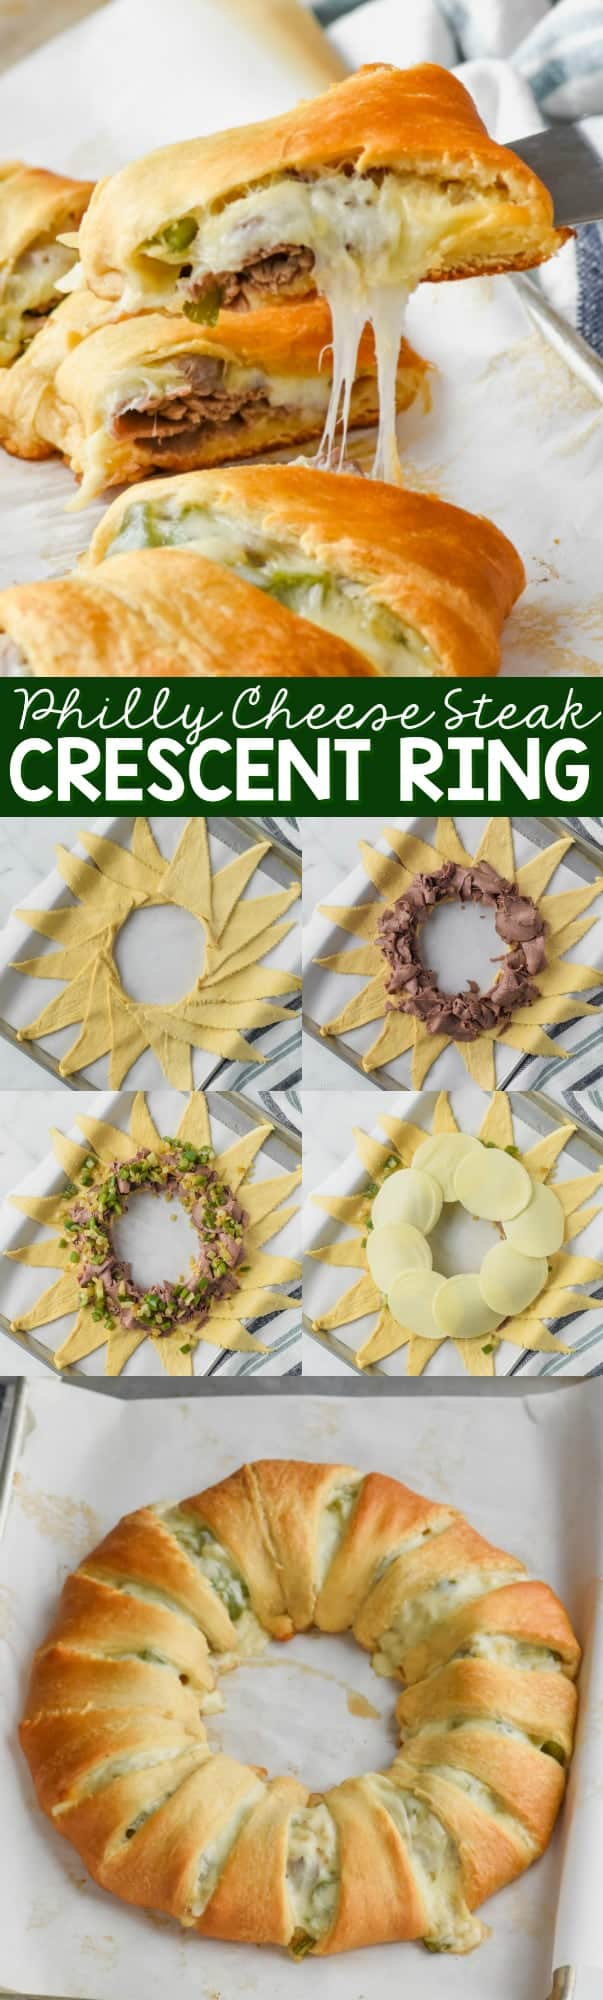 dishing out a piece of philly cheese steak crescent ring and how to put it together